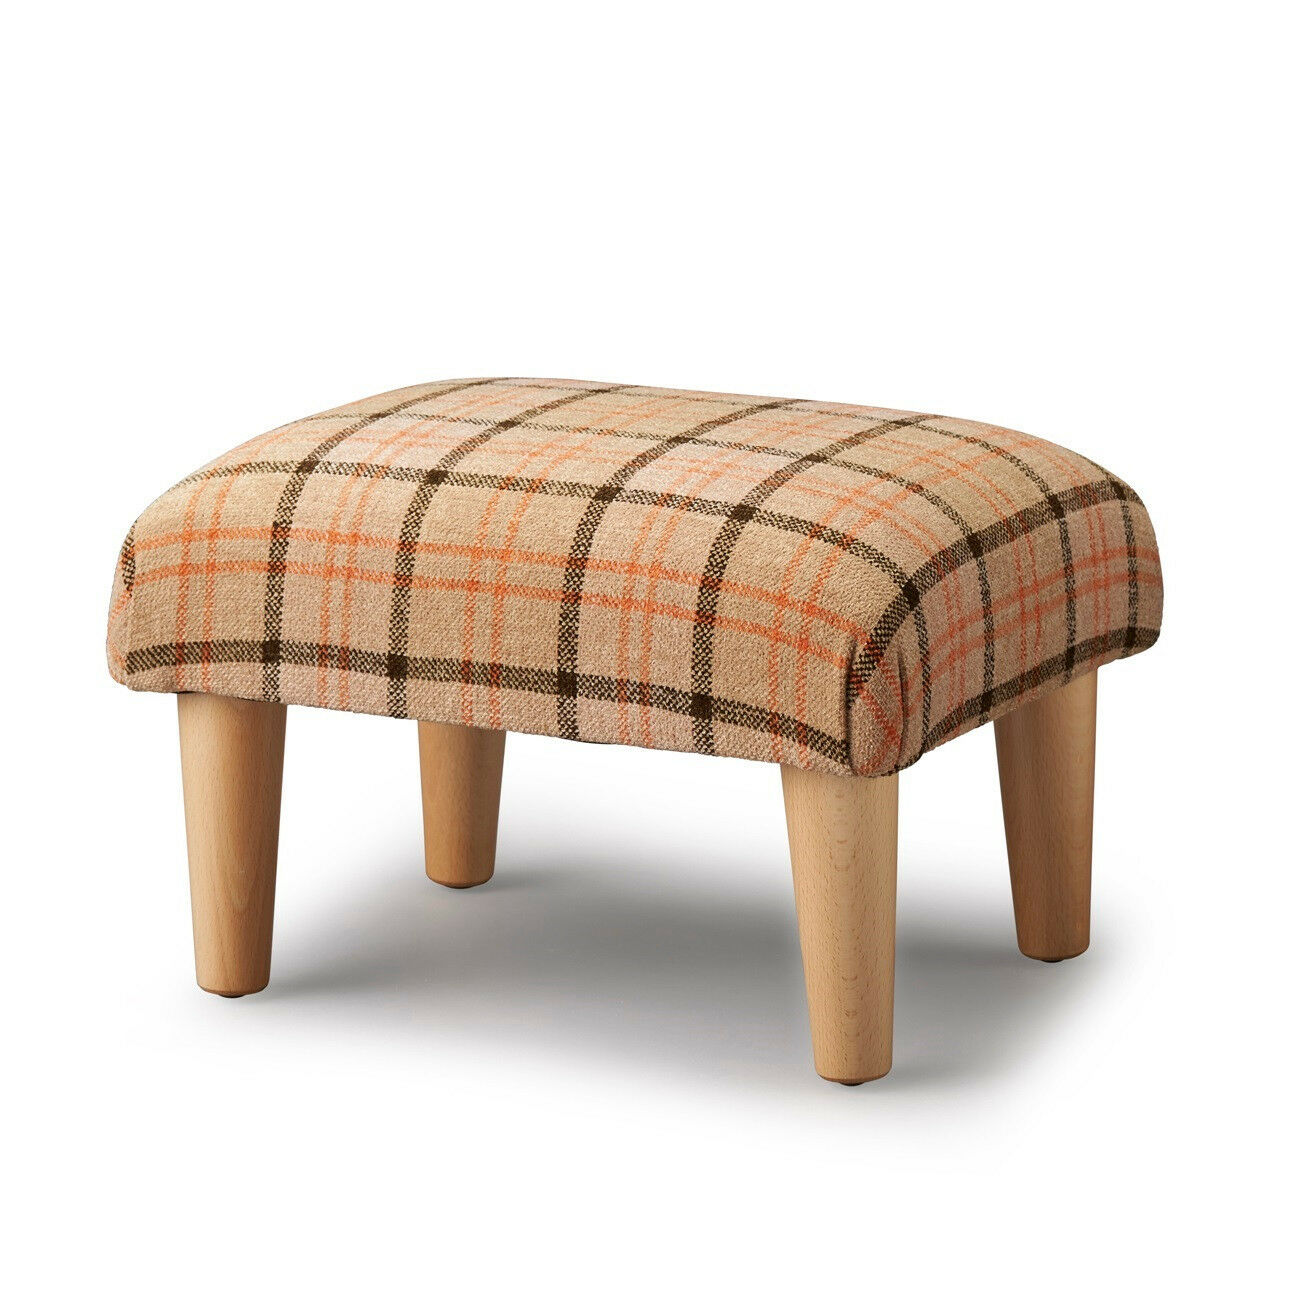 Biagi Upholstery & Design Wheat Orange Chocolate Plaid Tartan Footstool